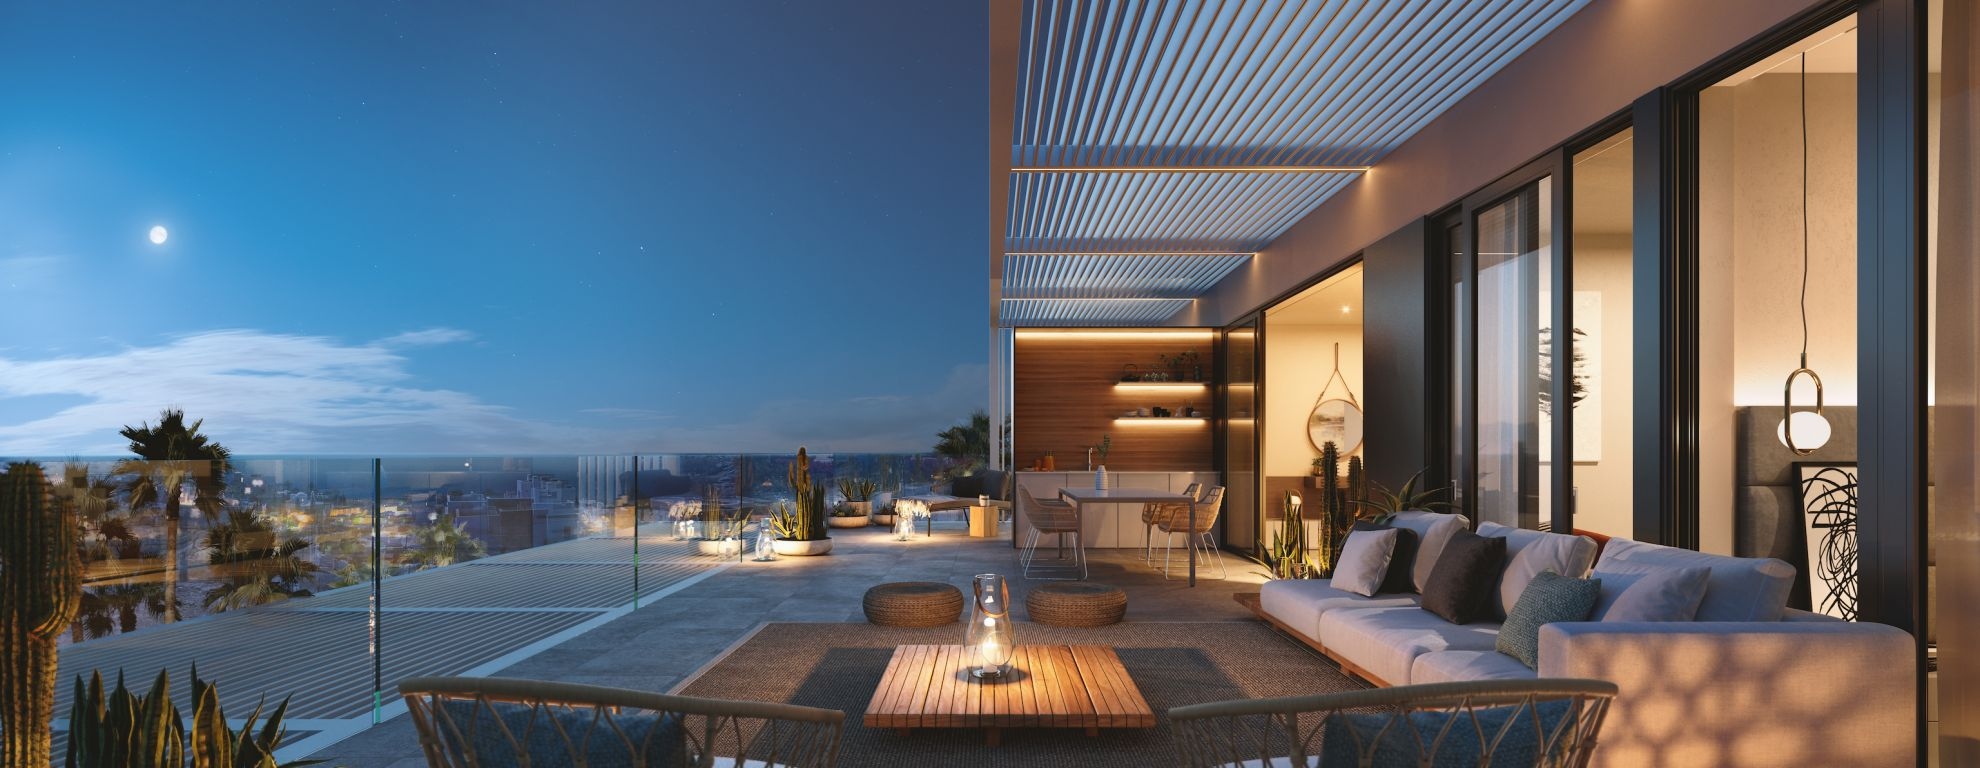 2 and 3 bedroom penthouse-style apartments with big terraces overlookg the sea. House 23 31